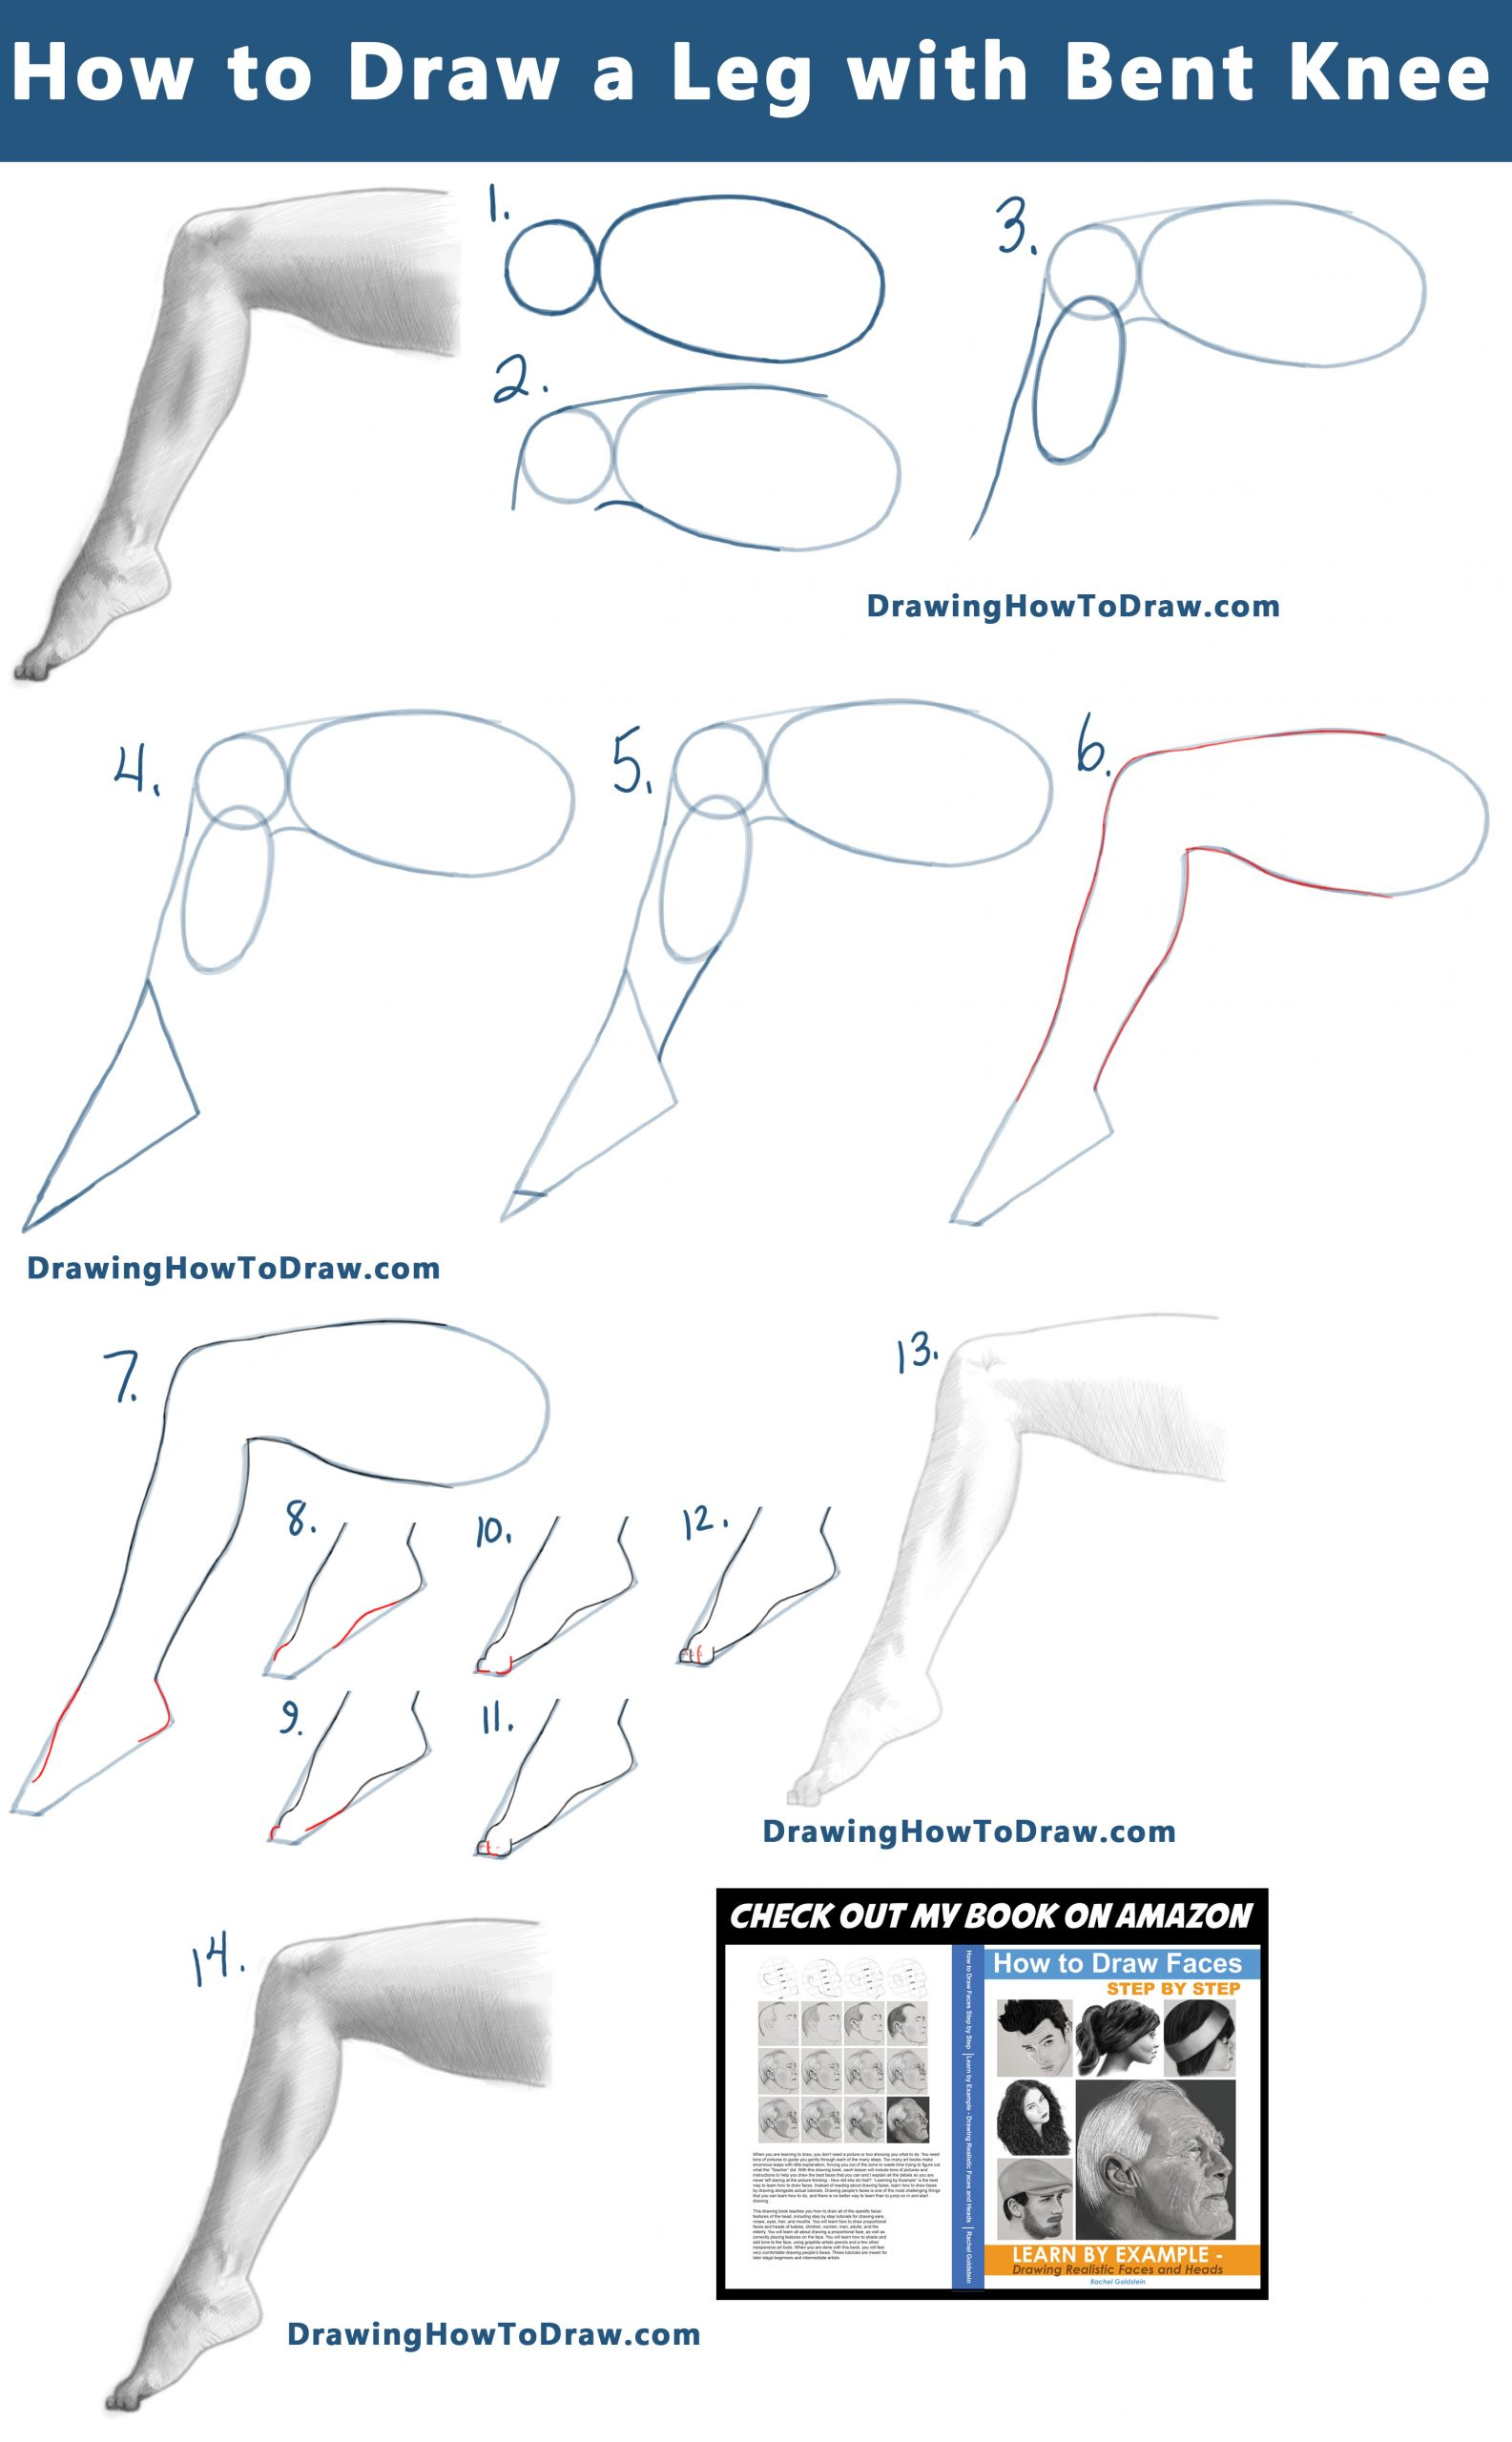 How to Draw a Leg and Foot with a Bent Knee from the Side View :  Step by Step Tutorial 04